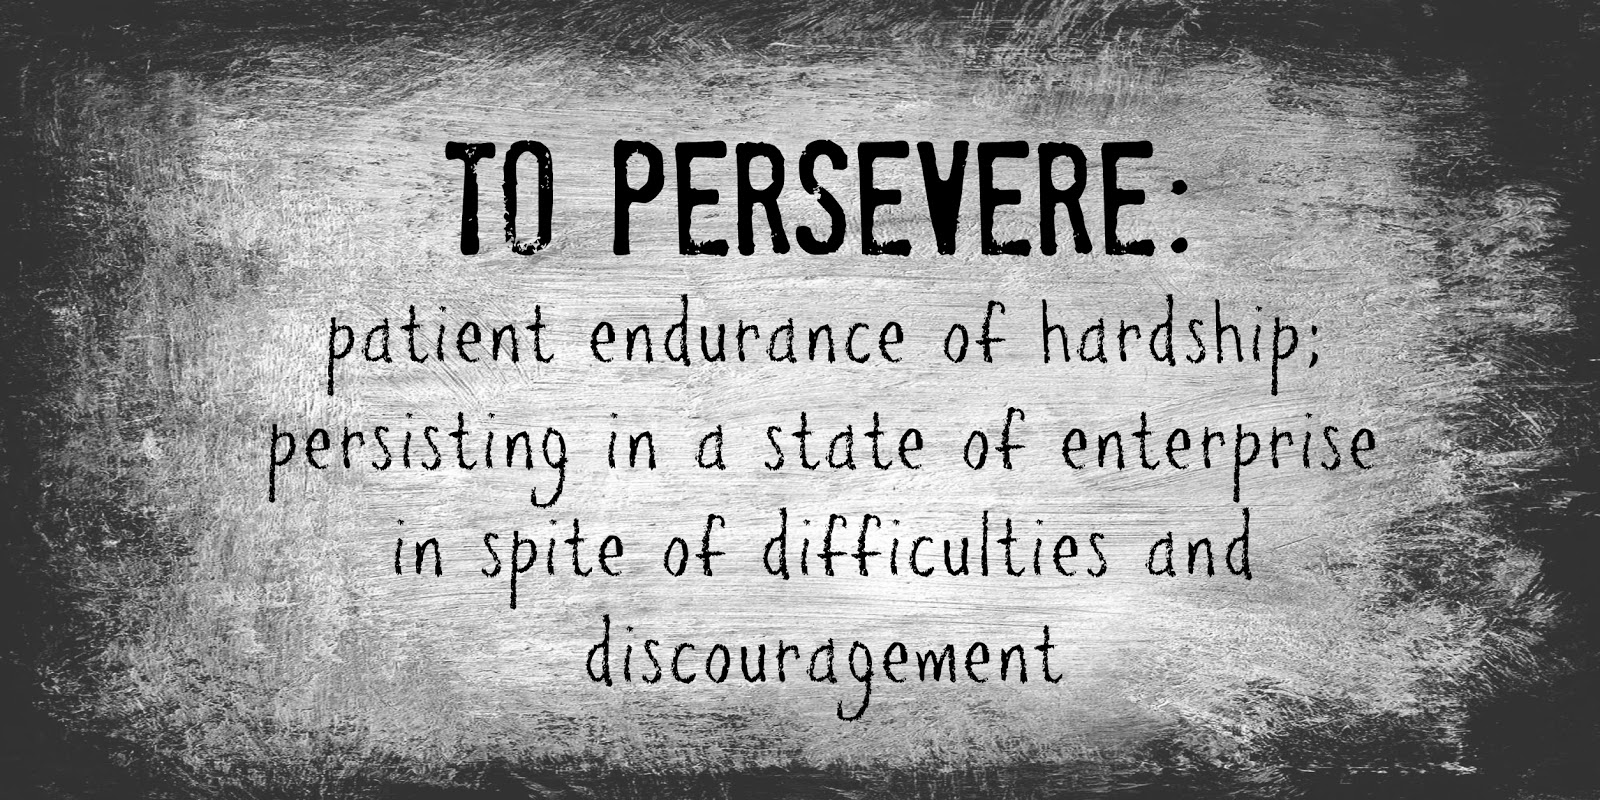 3 perseverance tips three tips that can help you persevere